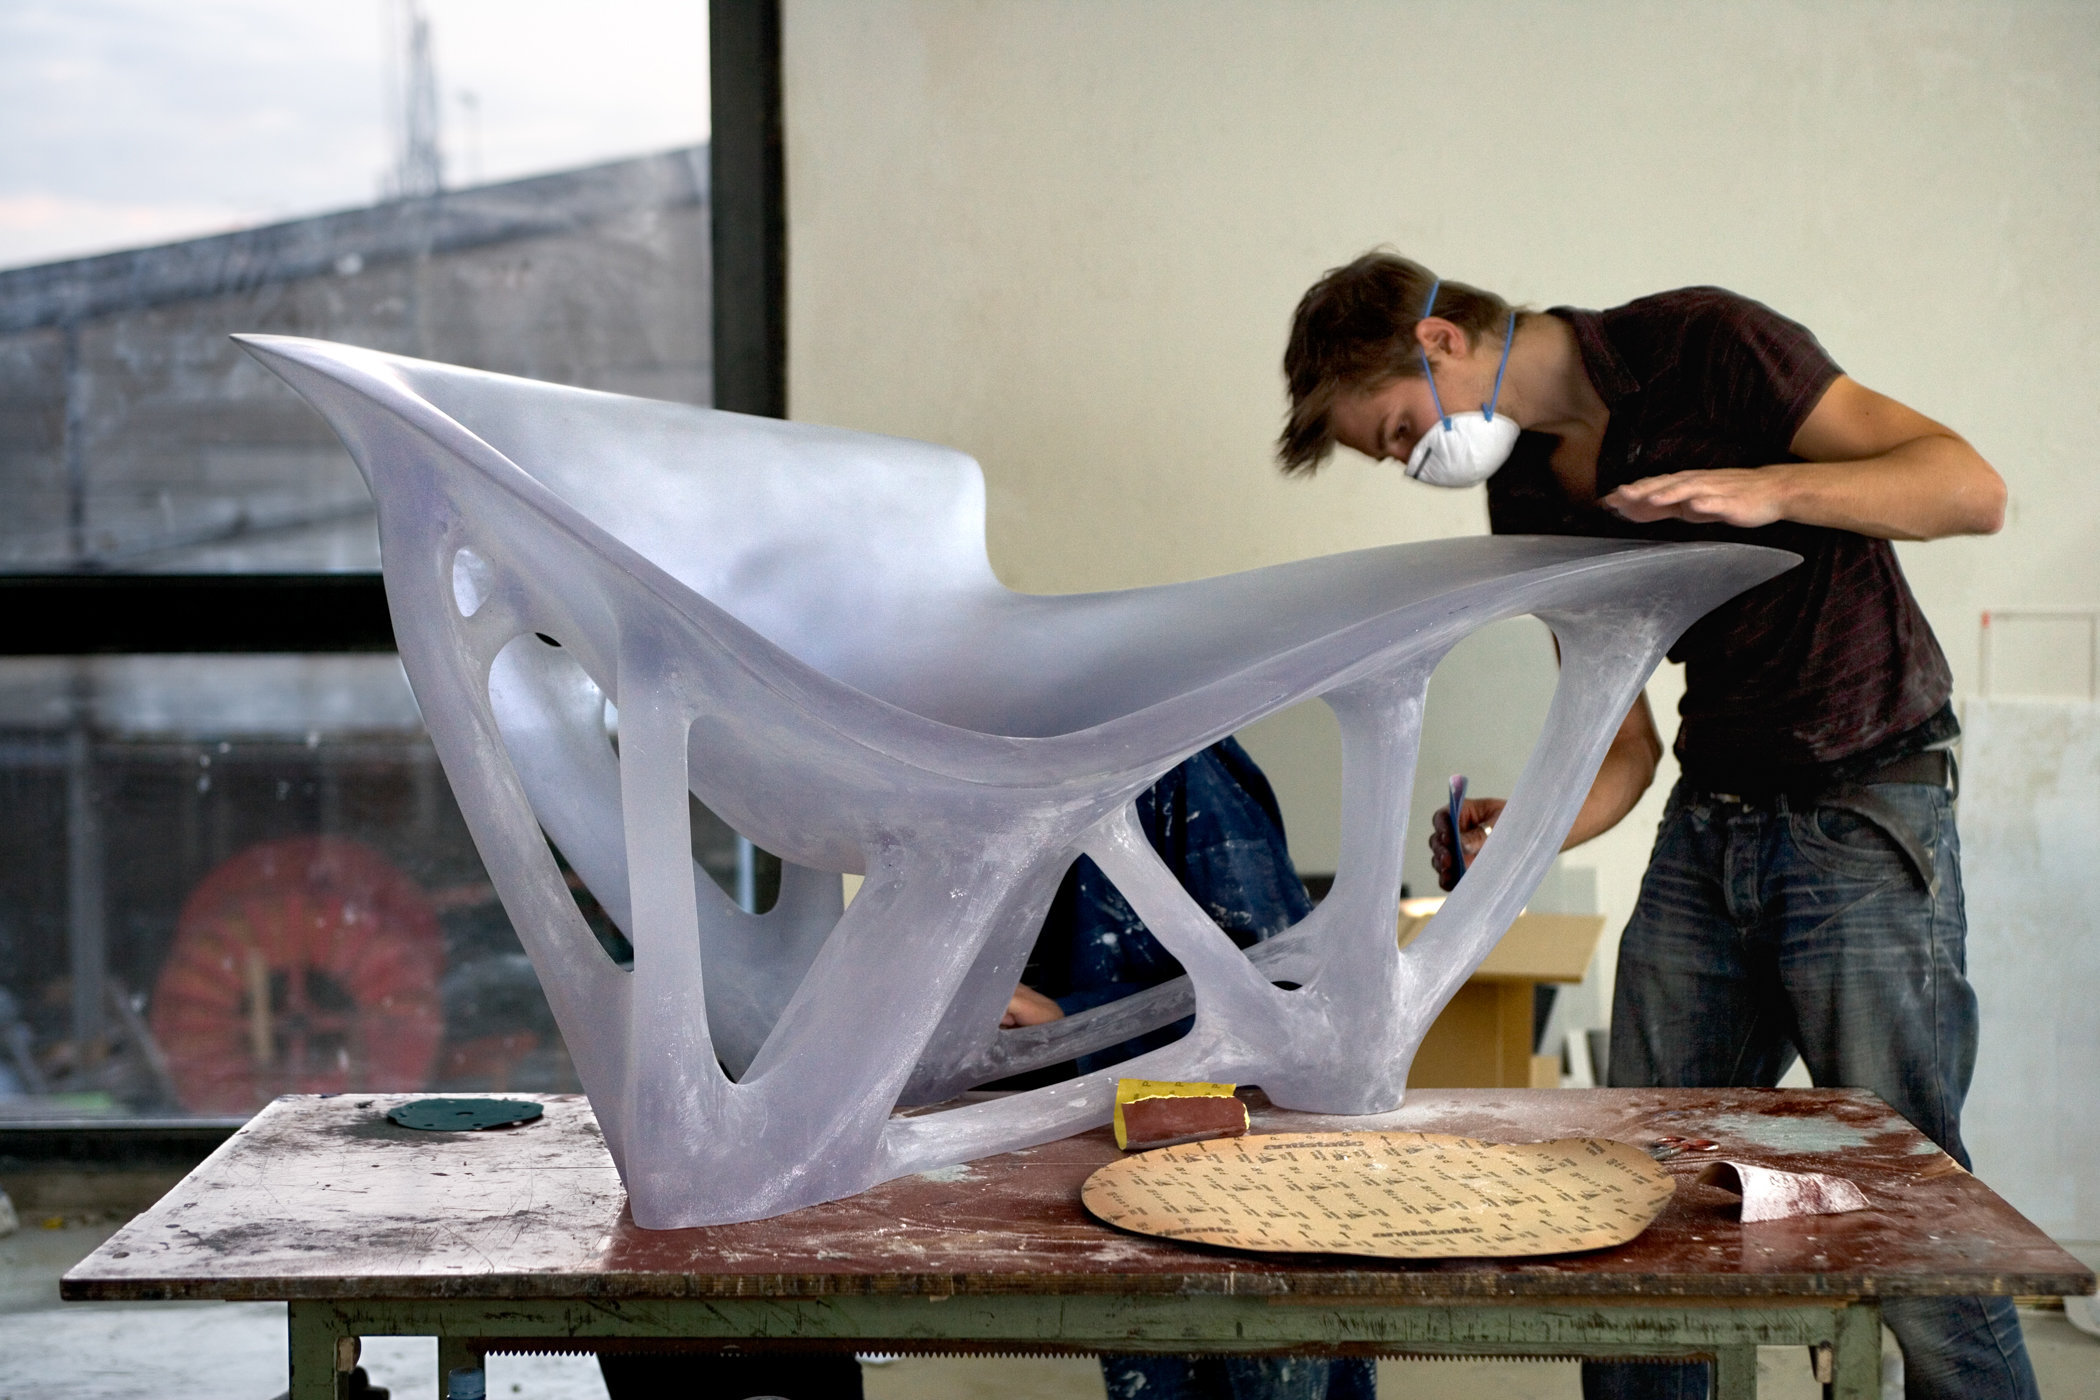 Bone chair prototype, Joris Laarman